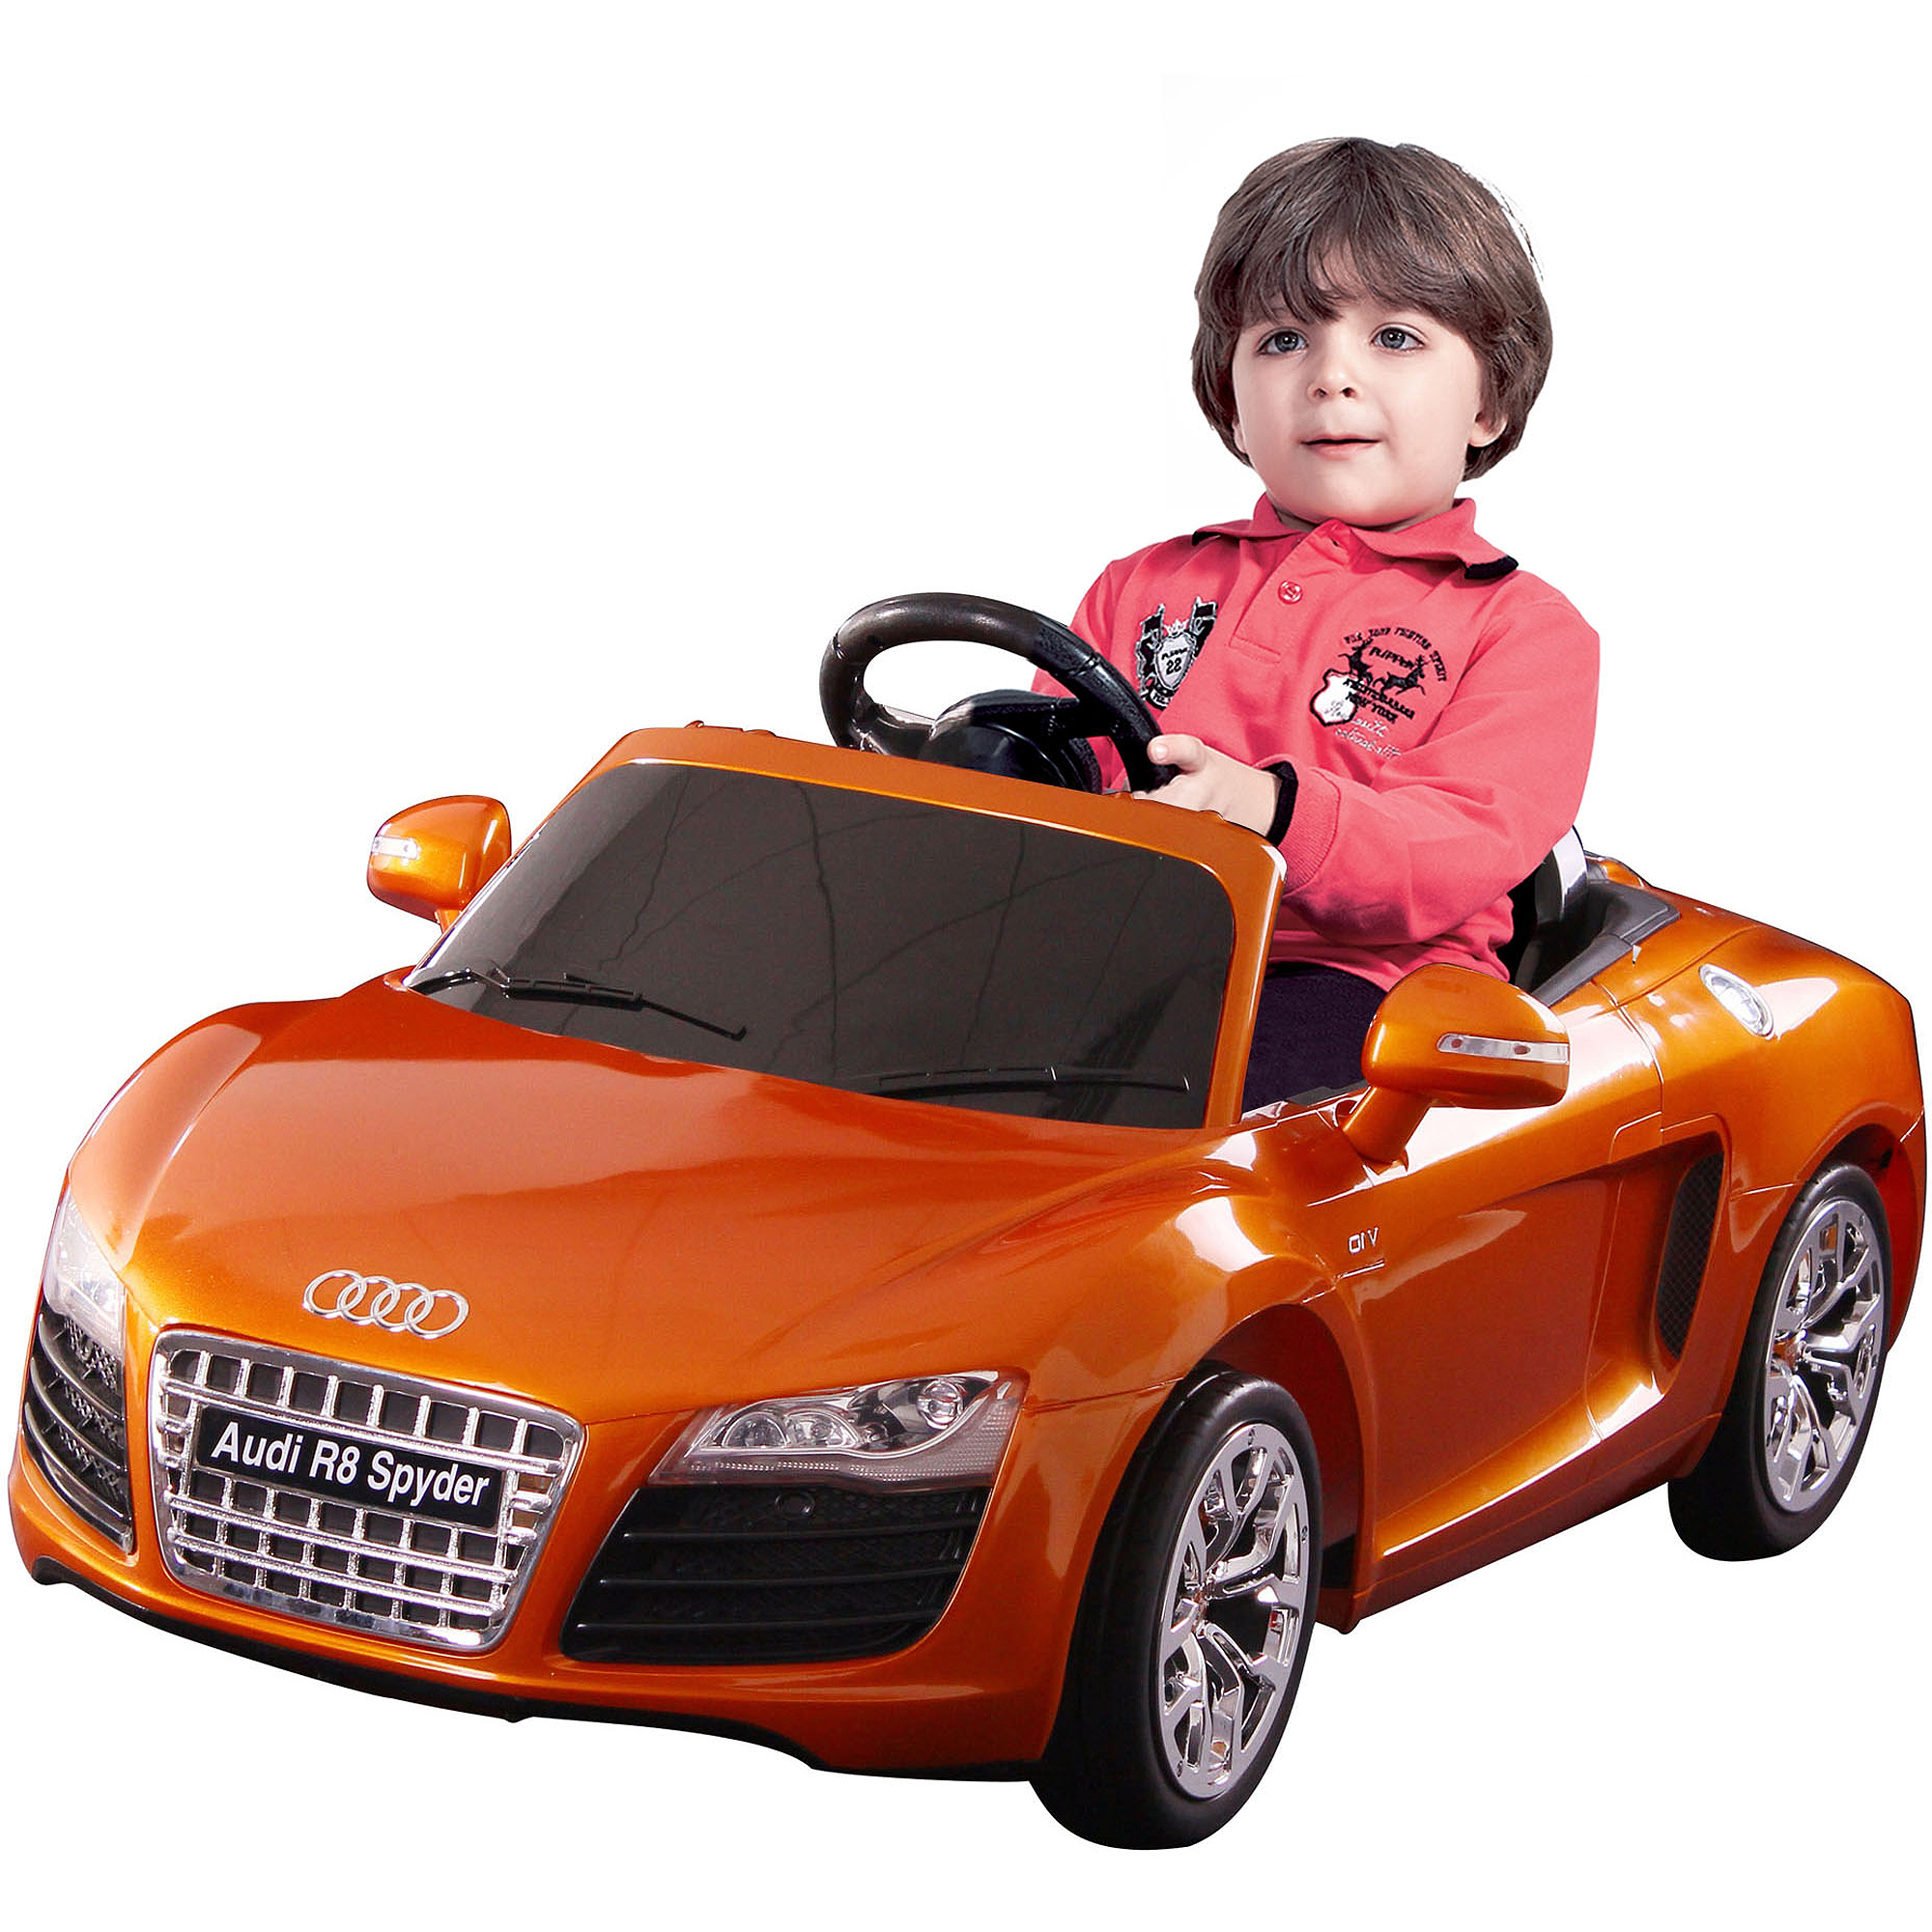 Kalee Audi R8 Spyder 12-Volt Battery-Powered Ride-On, Orange